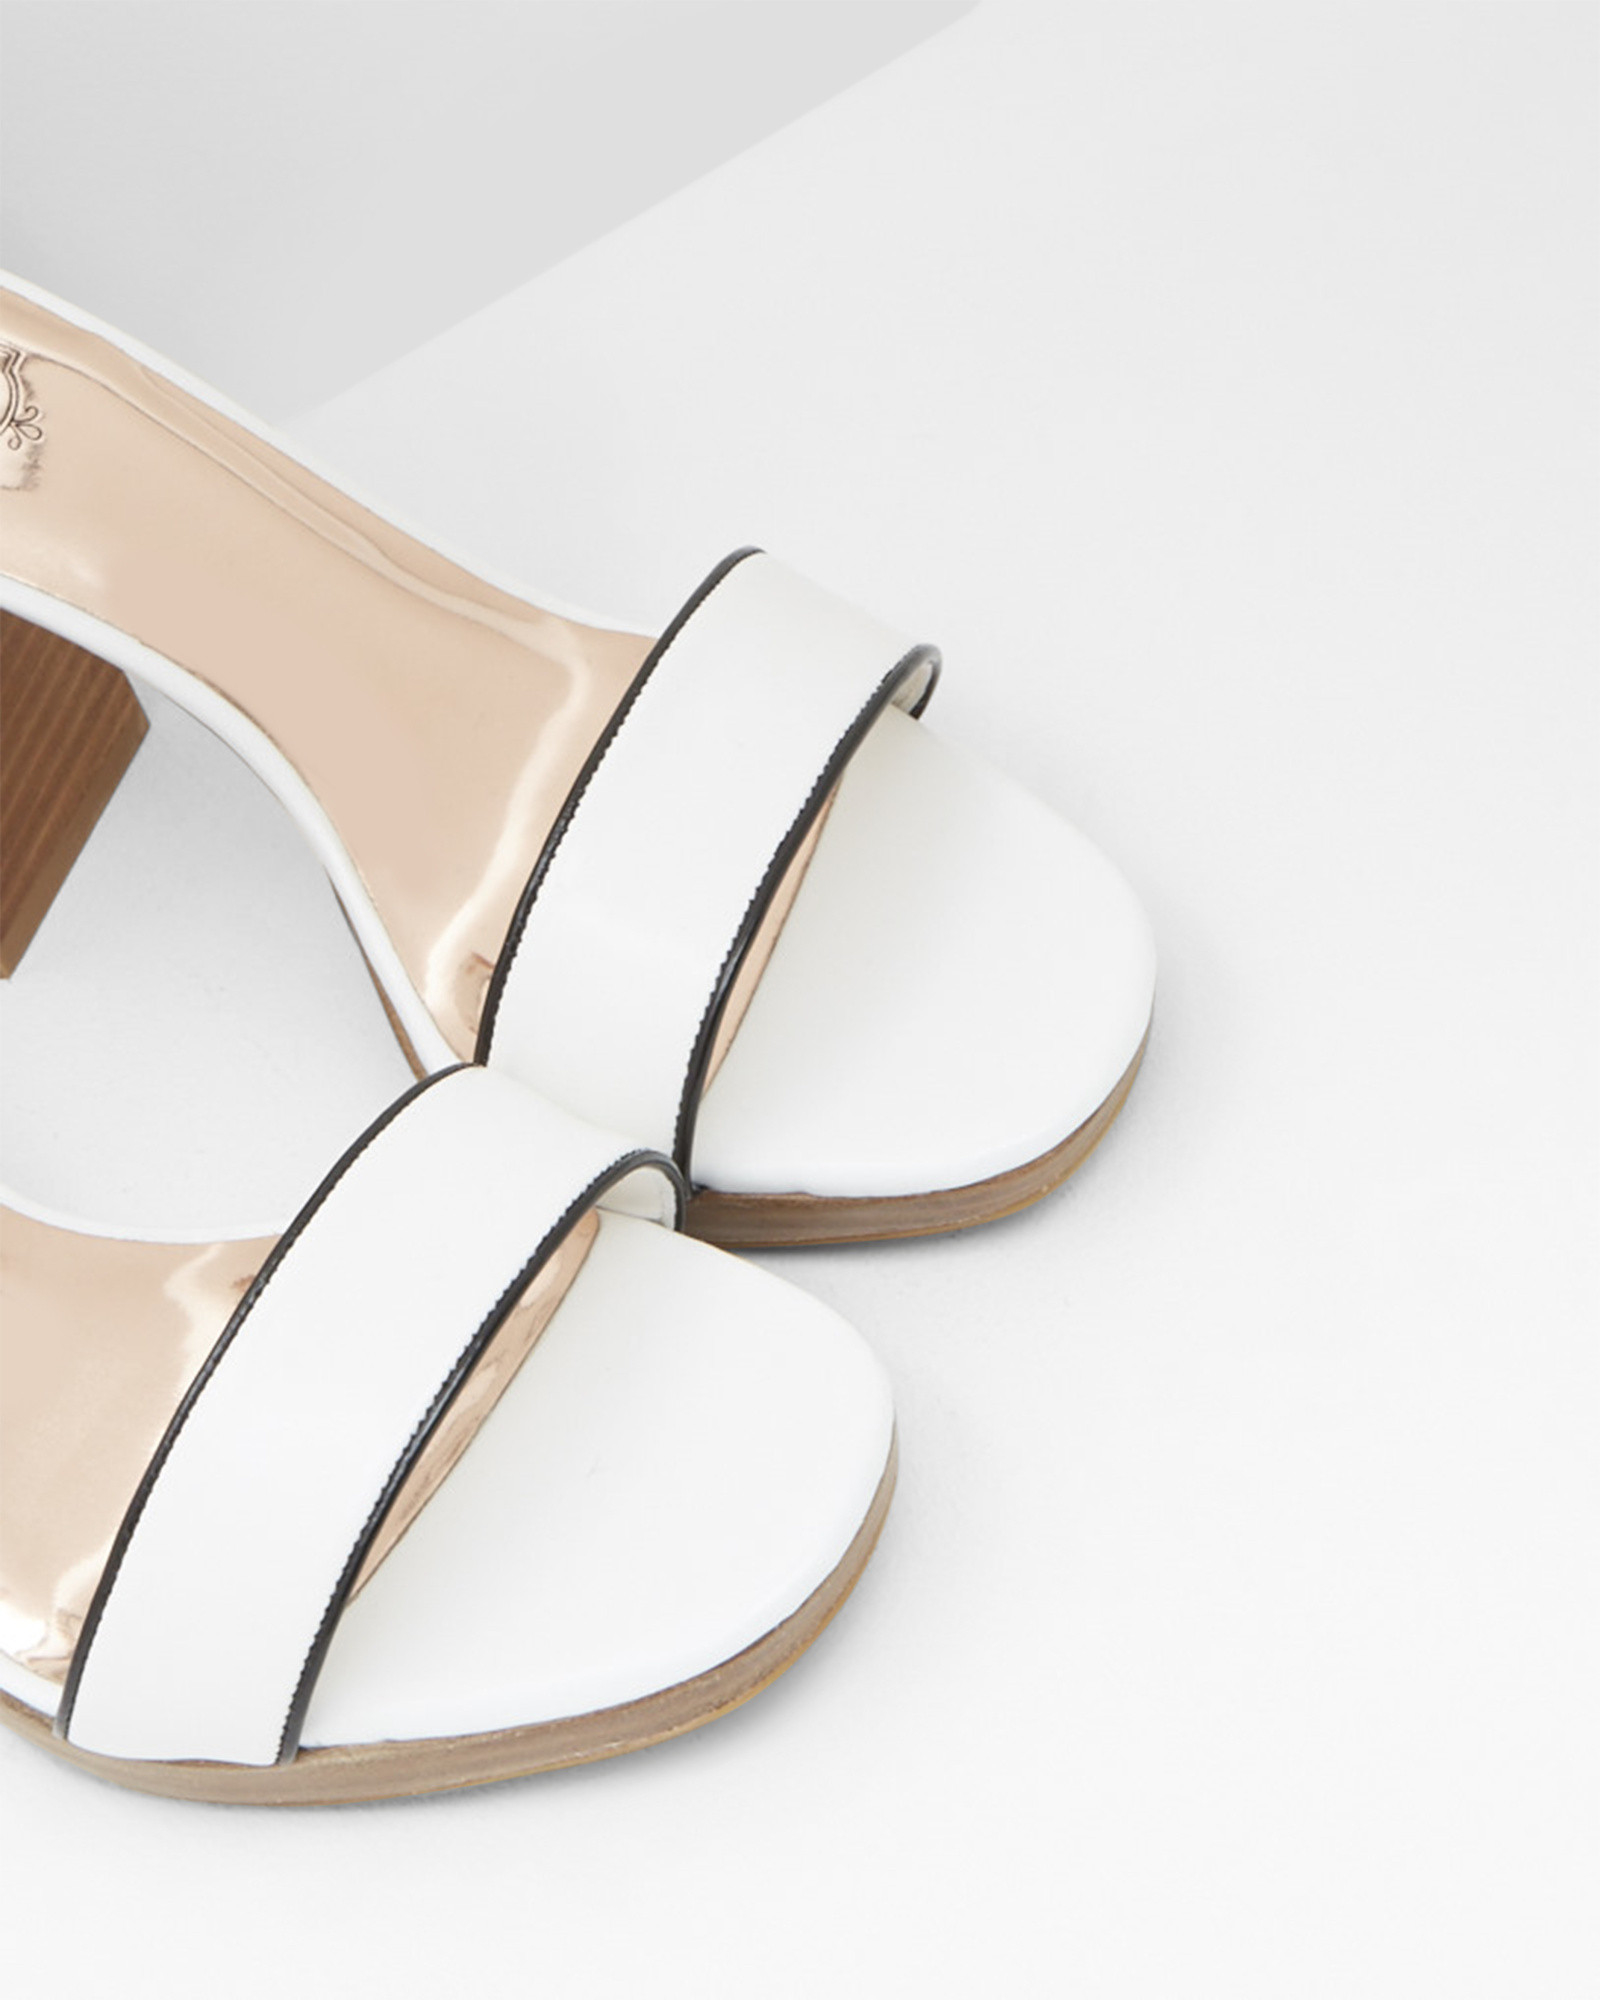 537a8d83f Ted Baker Open Toe Block Heeled Platform Sandals in White - Lyst